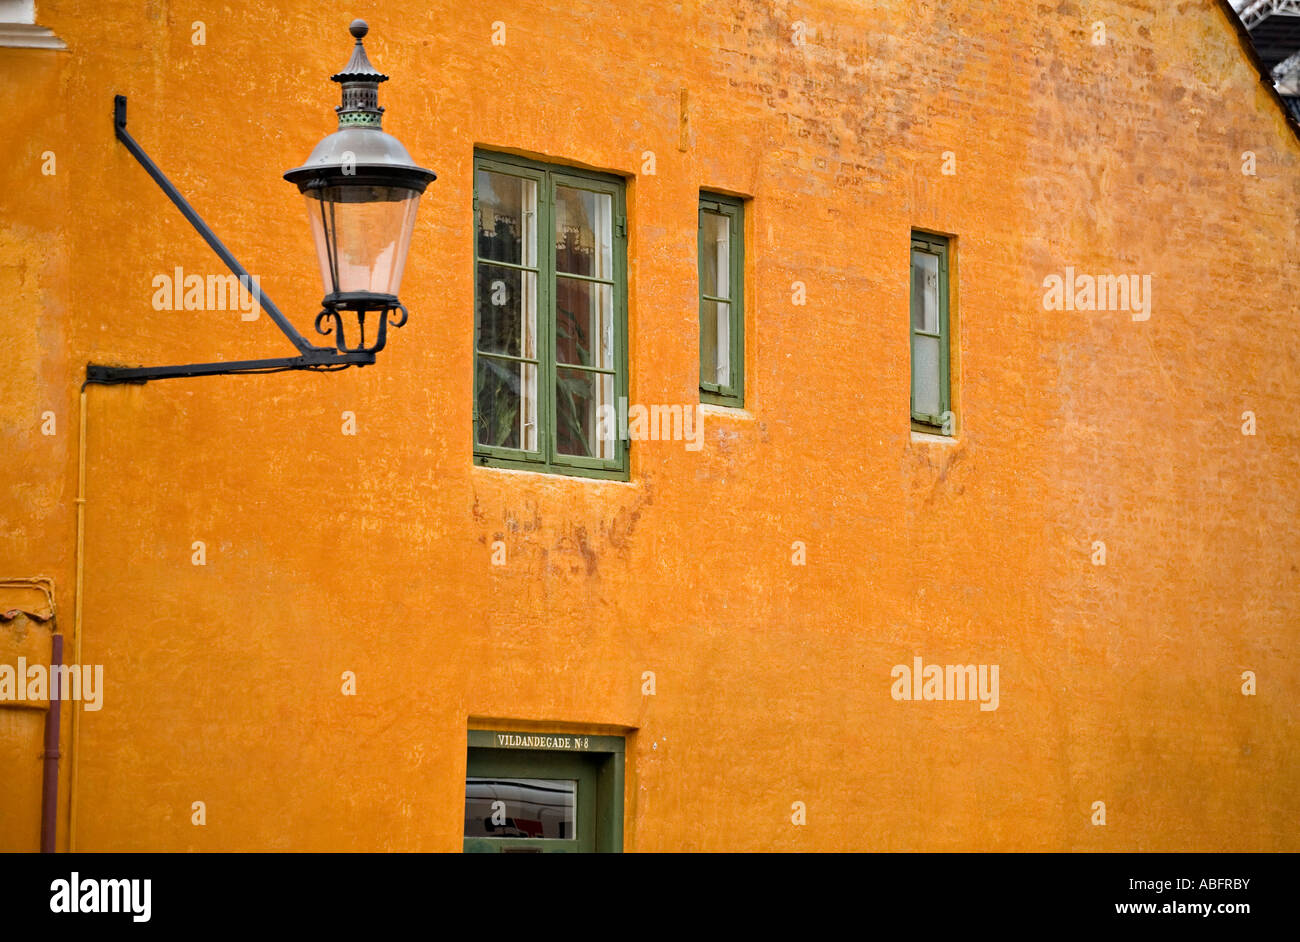 Streetlight on Ochre Number 8 - Stock Image